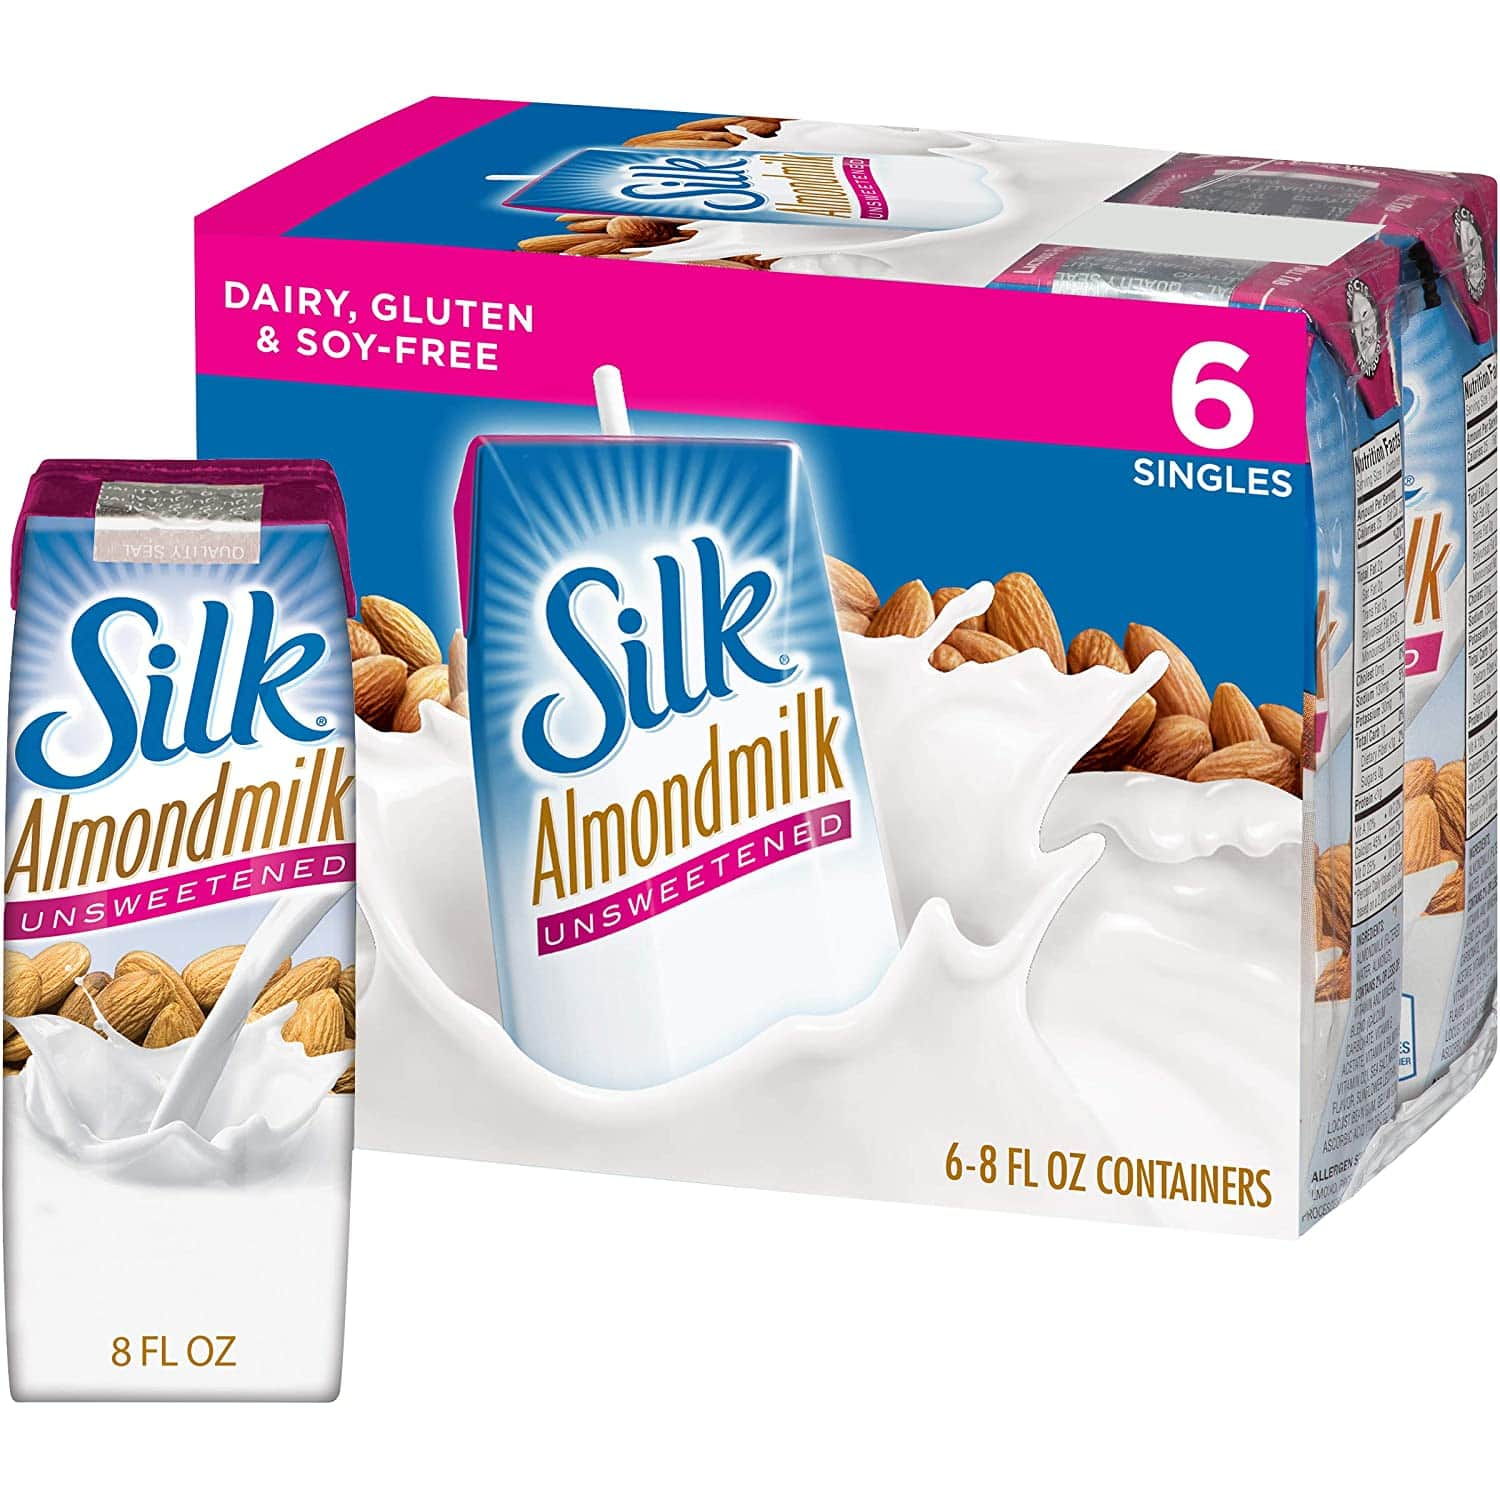 Silk Almond Milk Unsweetened 8 oz 6 Count (Pack of 3) $8.13 or less @Amazon